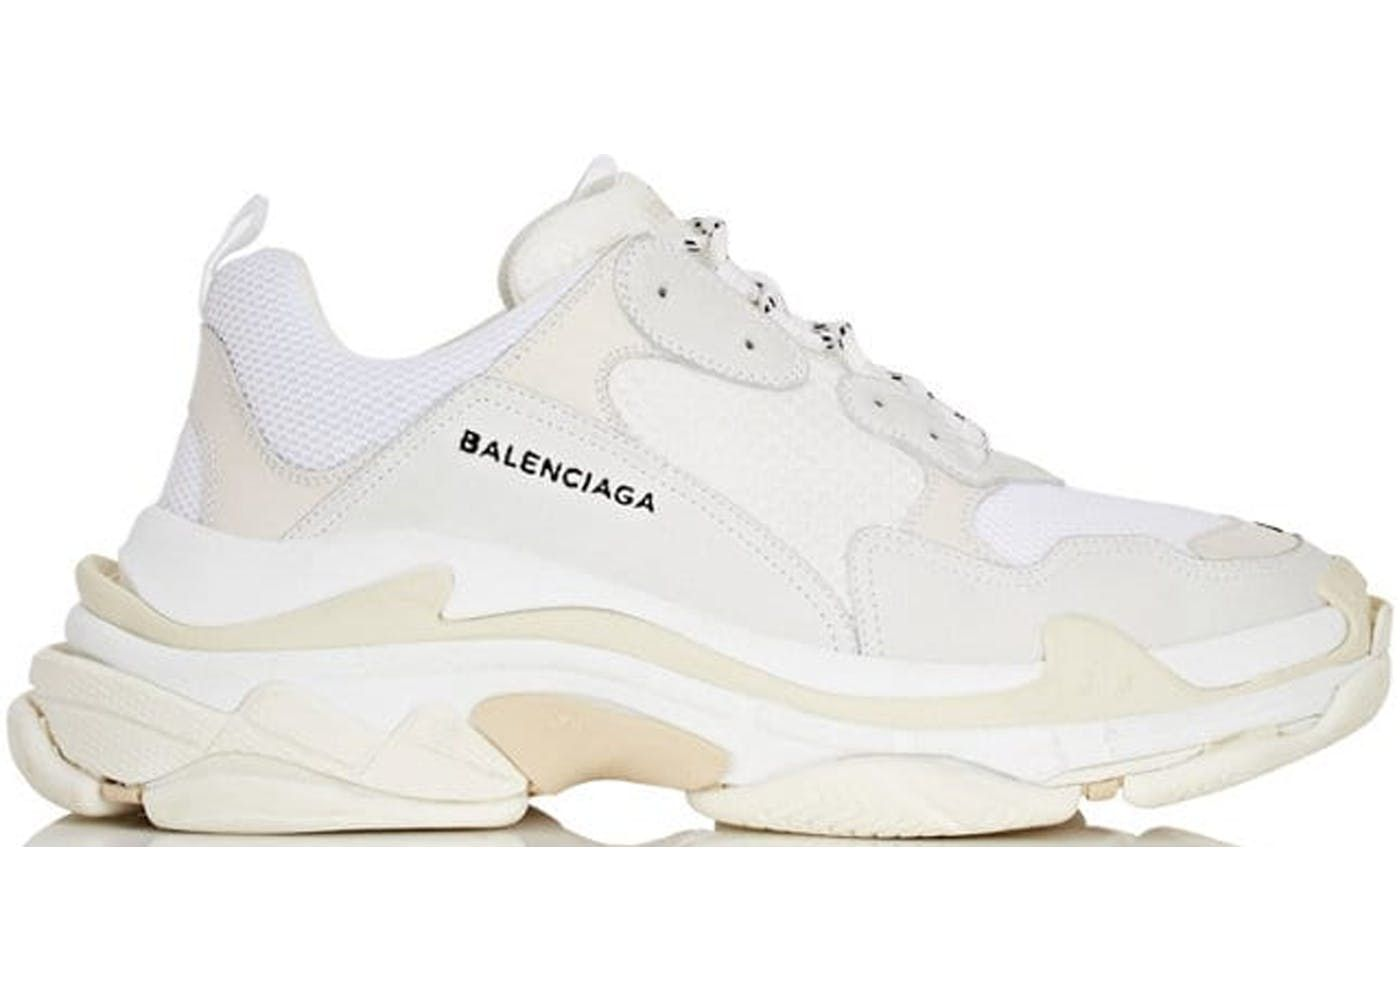 Balenciaga Triple S White Black Red StockX